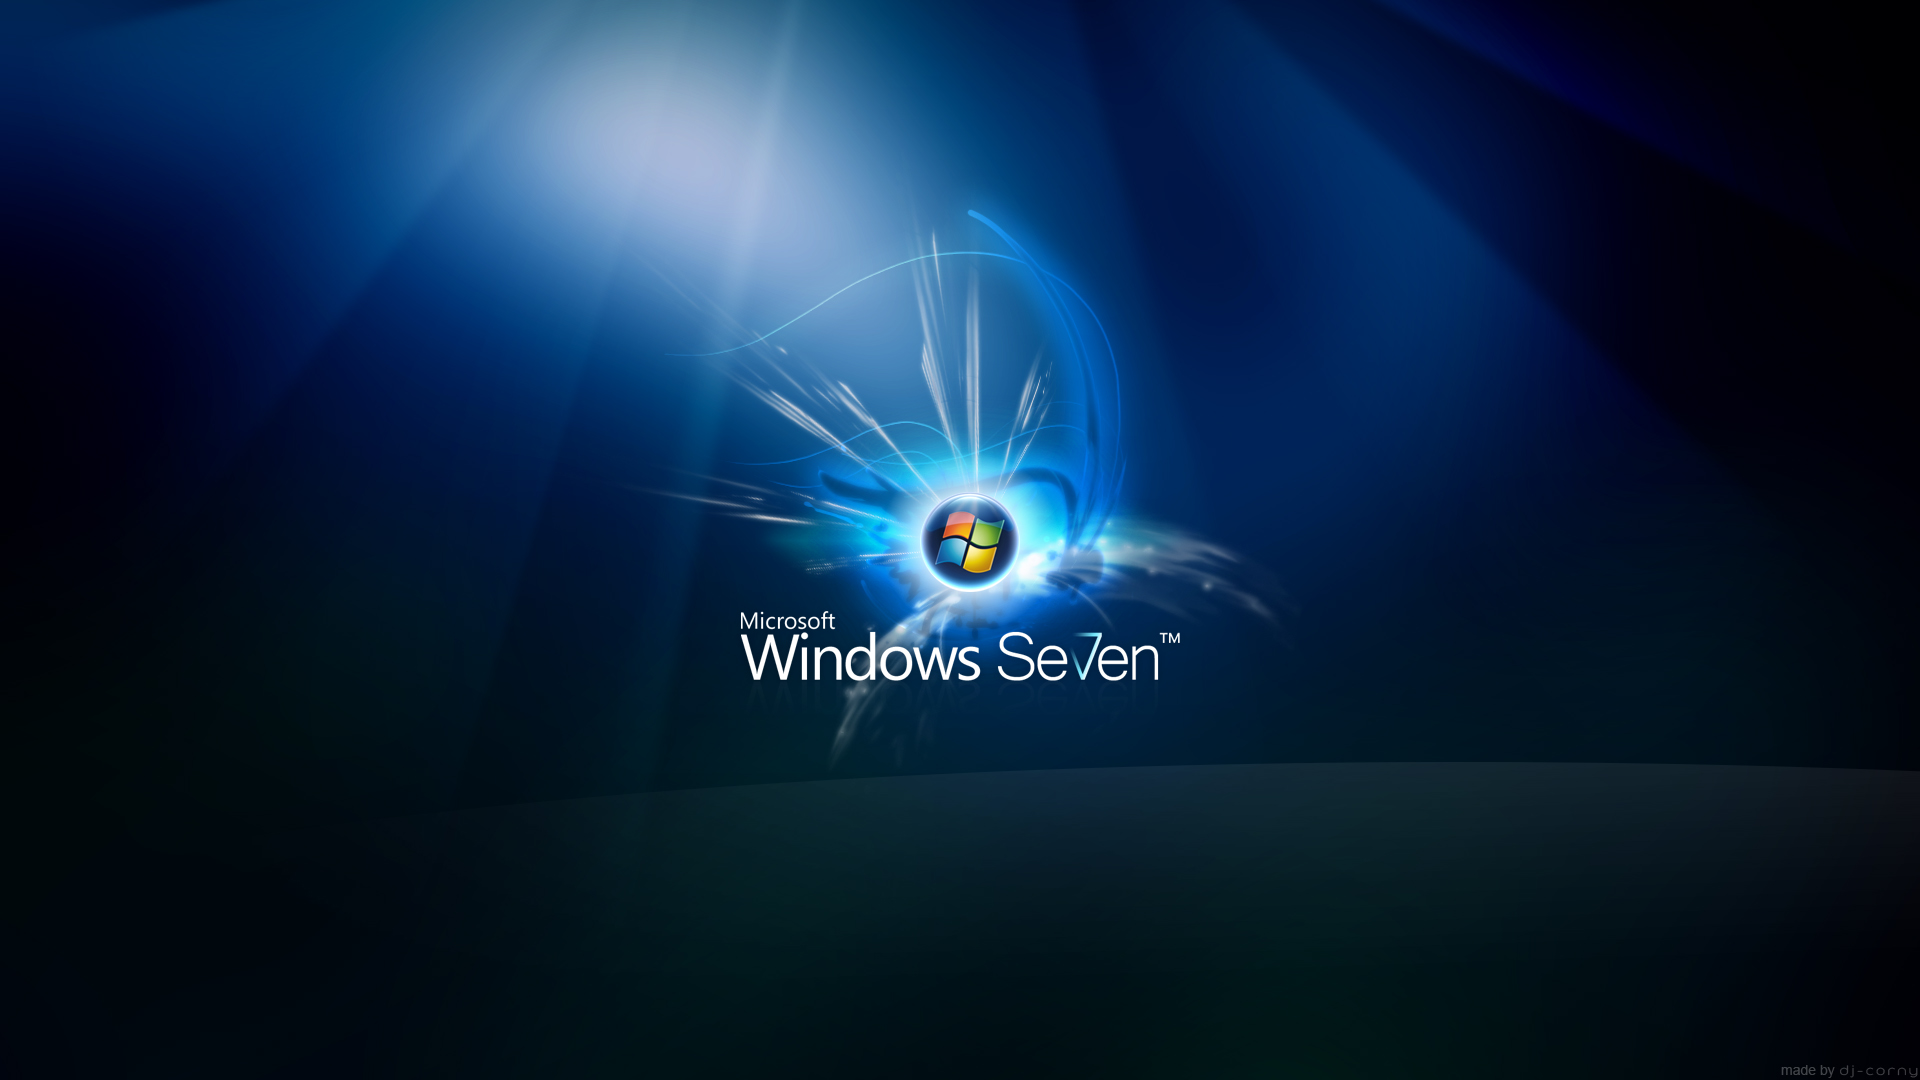 Windows Seven Sharp Wallpapers